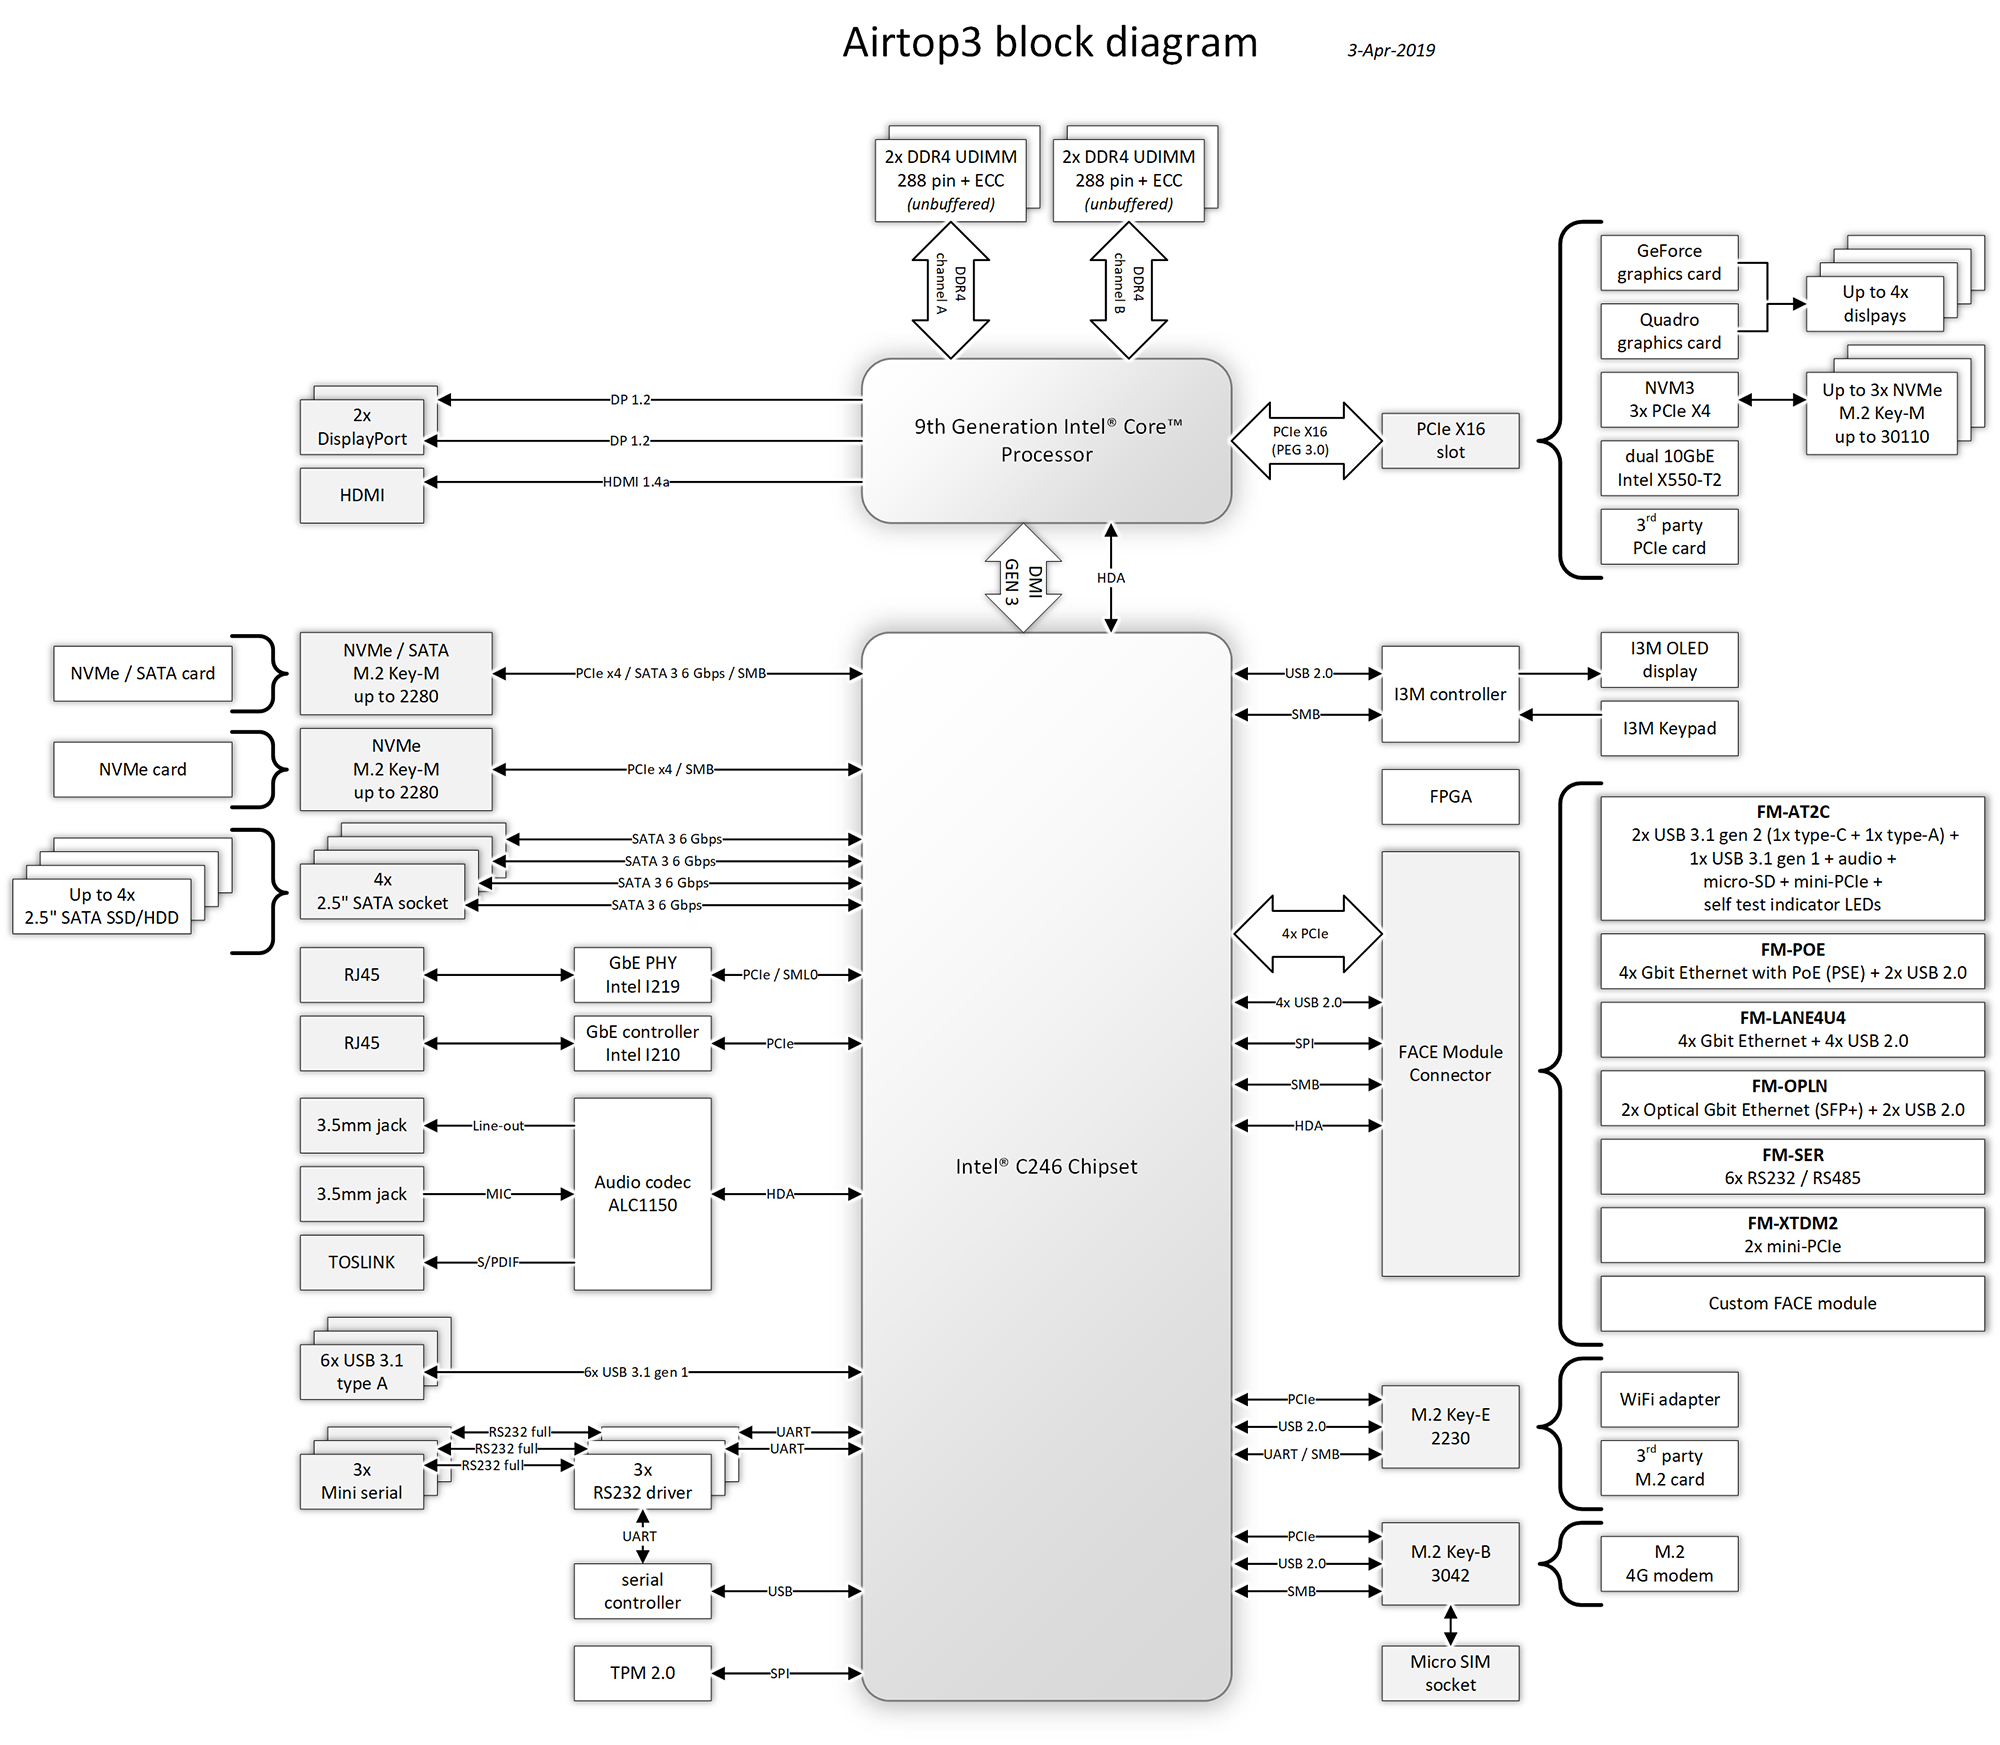 airtop3-block-diagram